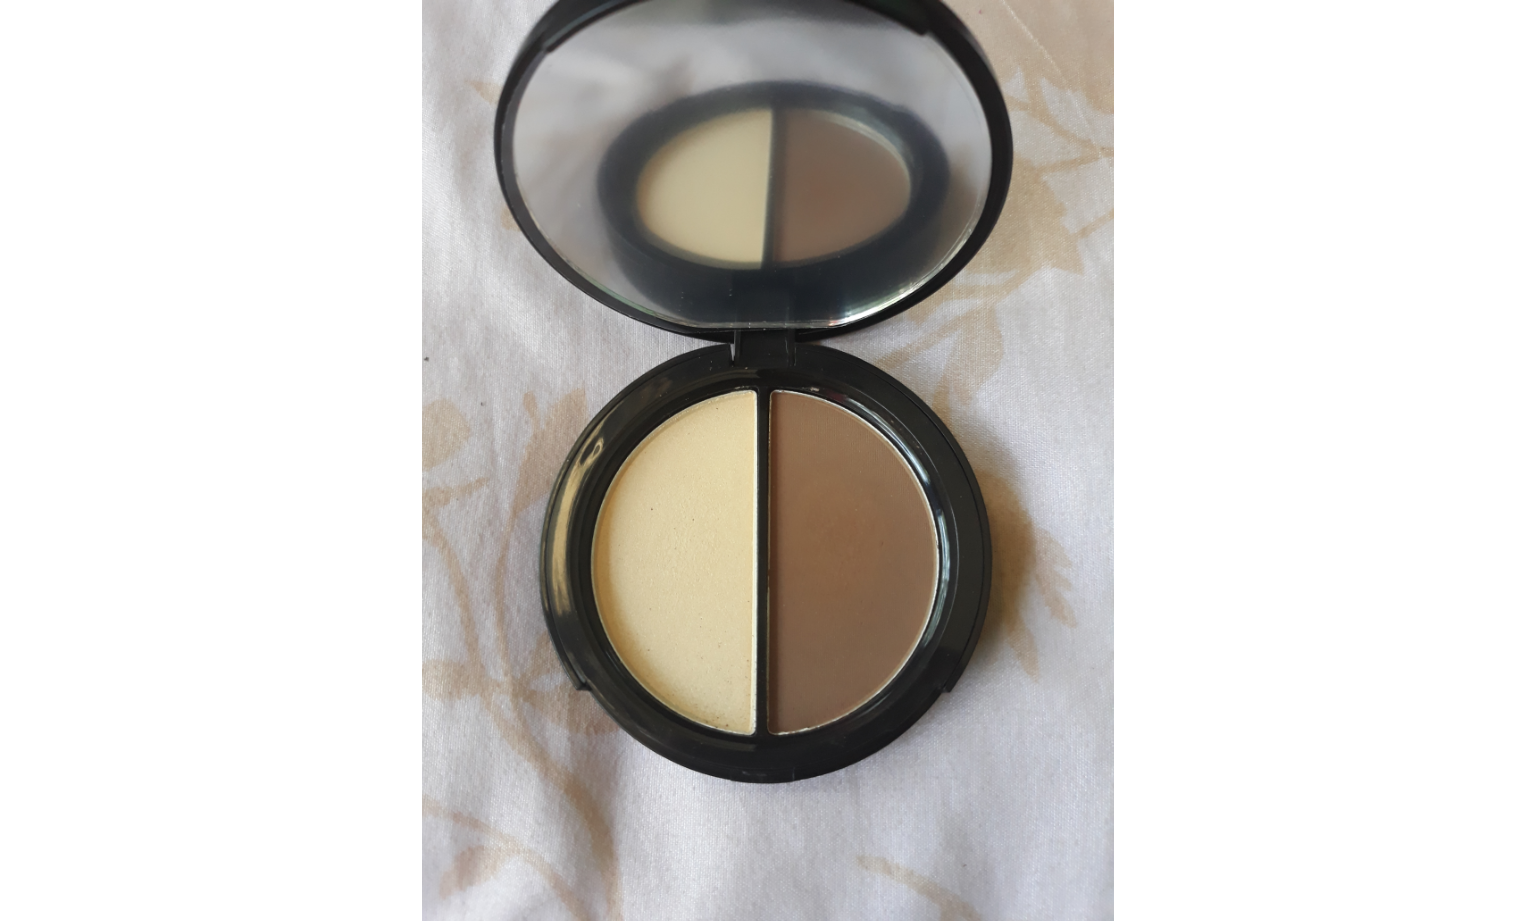 FOCALLURE Bronzer & Highlighter Duo